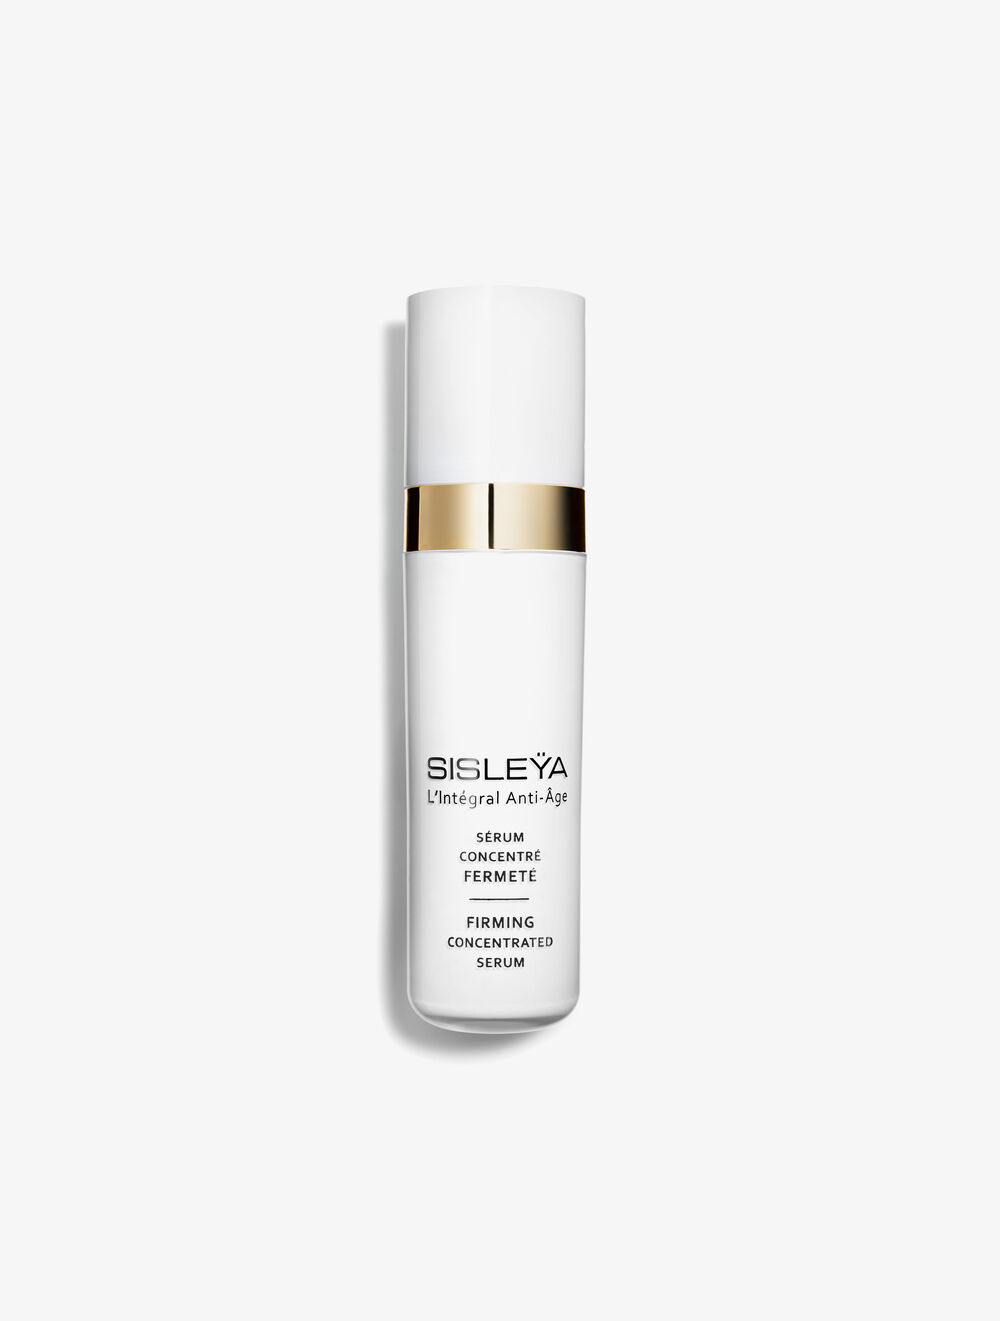 Sisleÿa L'Intégral Anti-Âge Firming Concentrated Serum